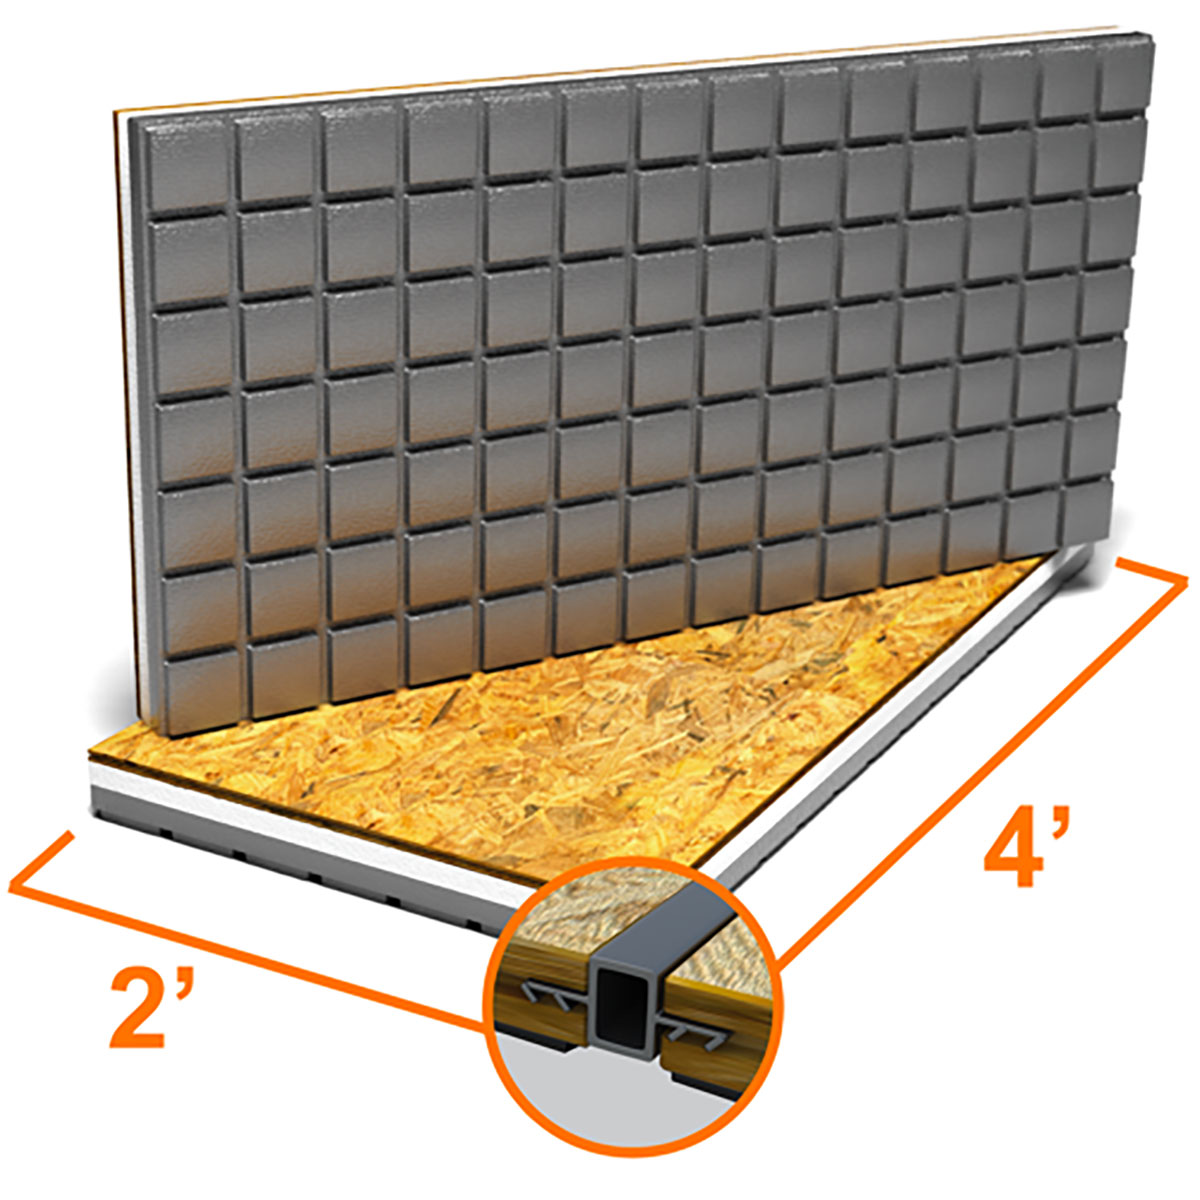 Basement Subfloor Options For Dry Warm Floors: Amdry: Insulated Subfloor Panels For Warmer Floors